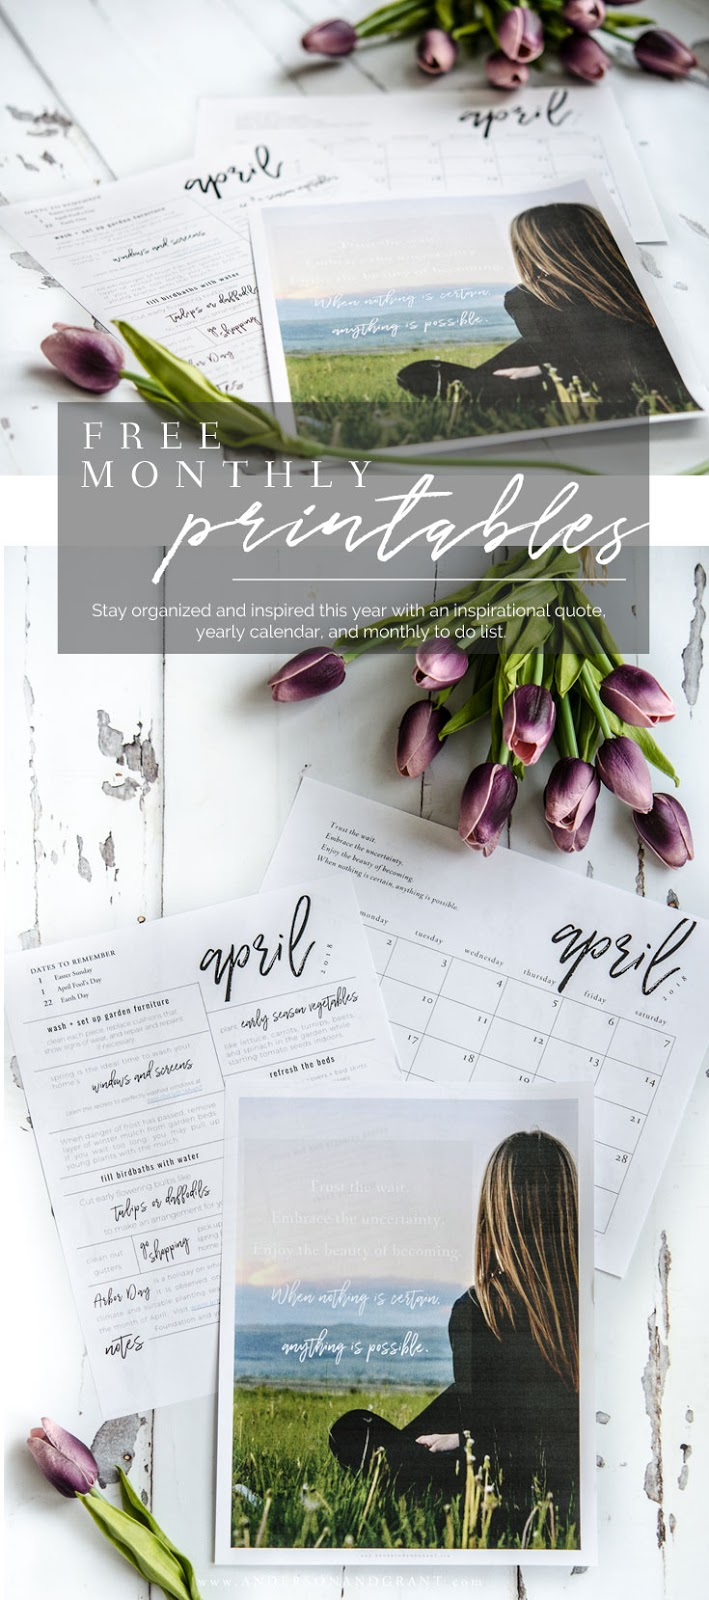 Stay organized + inspired in 2018 with these free printables - an inspirational quote, 2018 free printable calendar, + monthly to do list. #freeprintable #organization | www.andersonandgrant.com